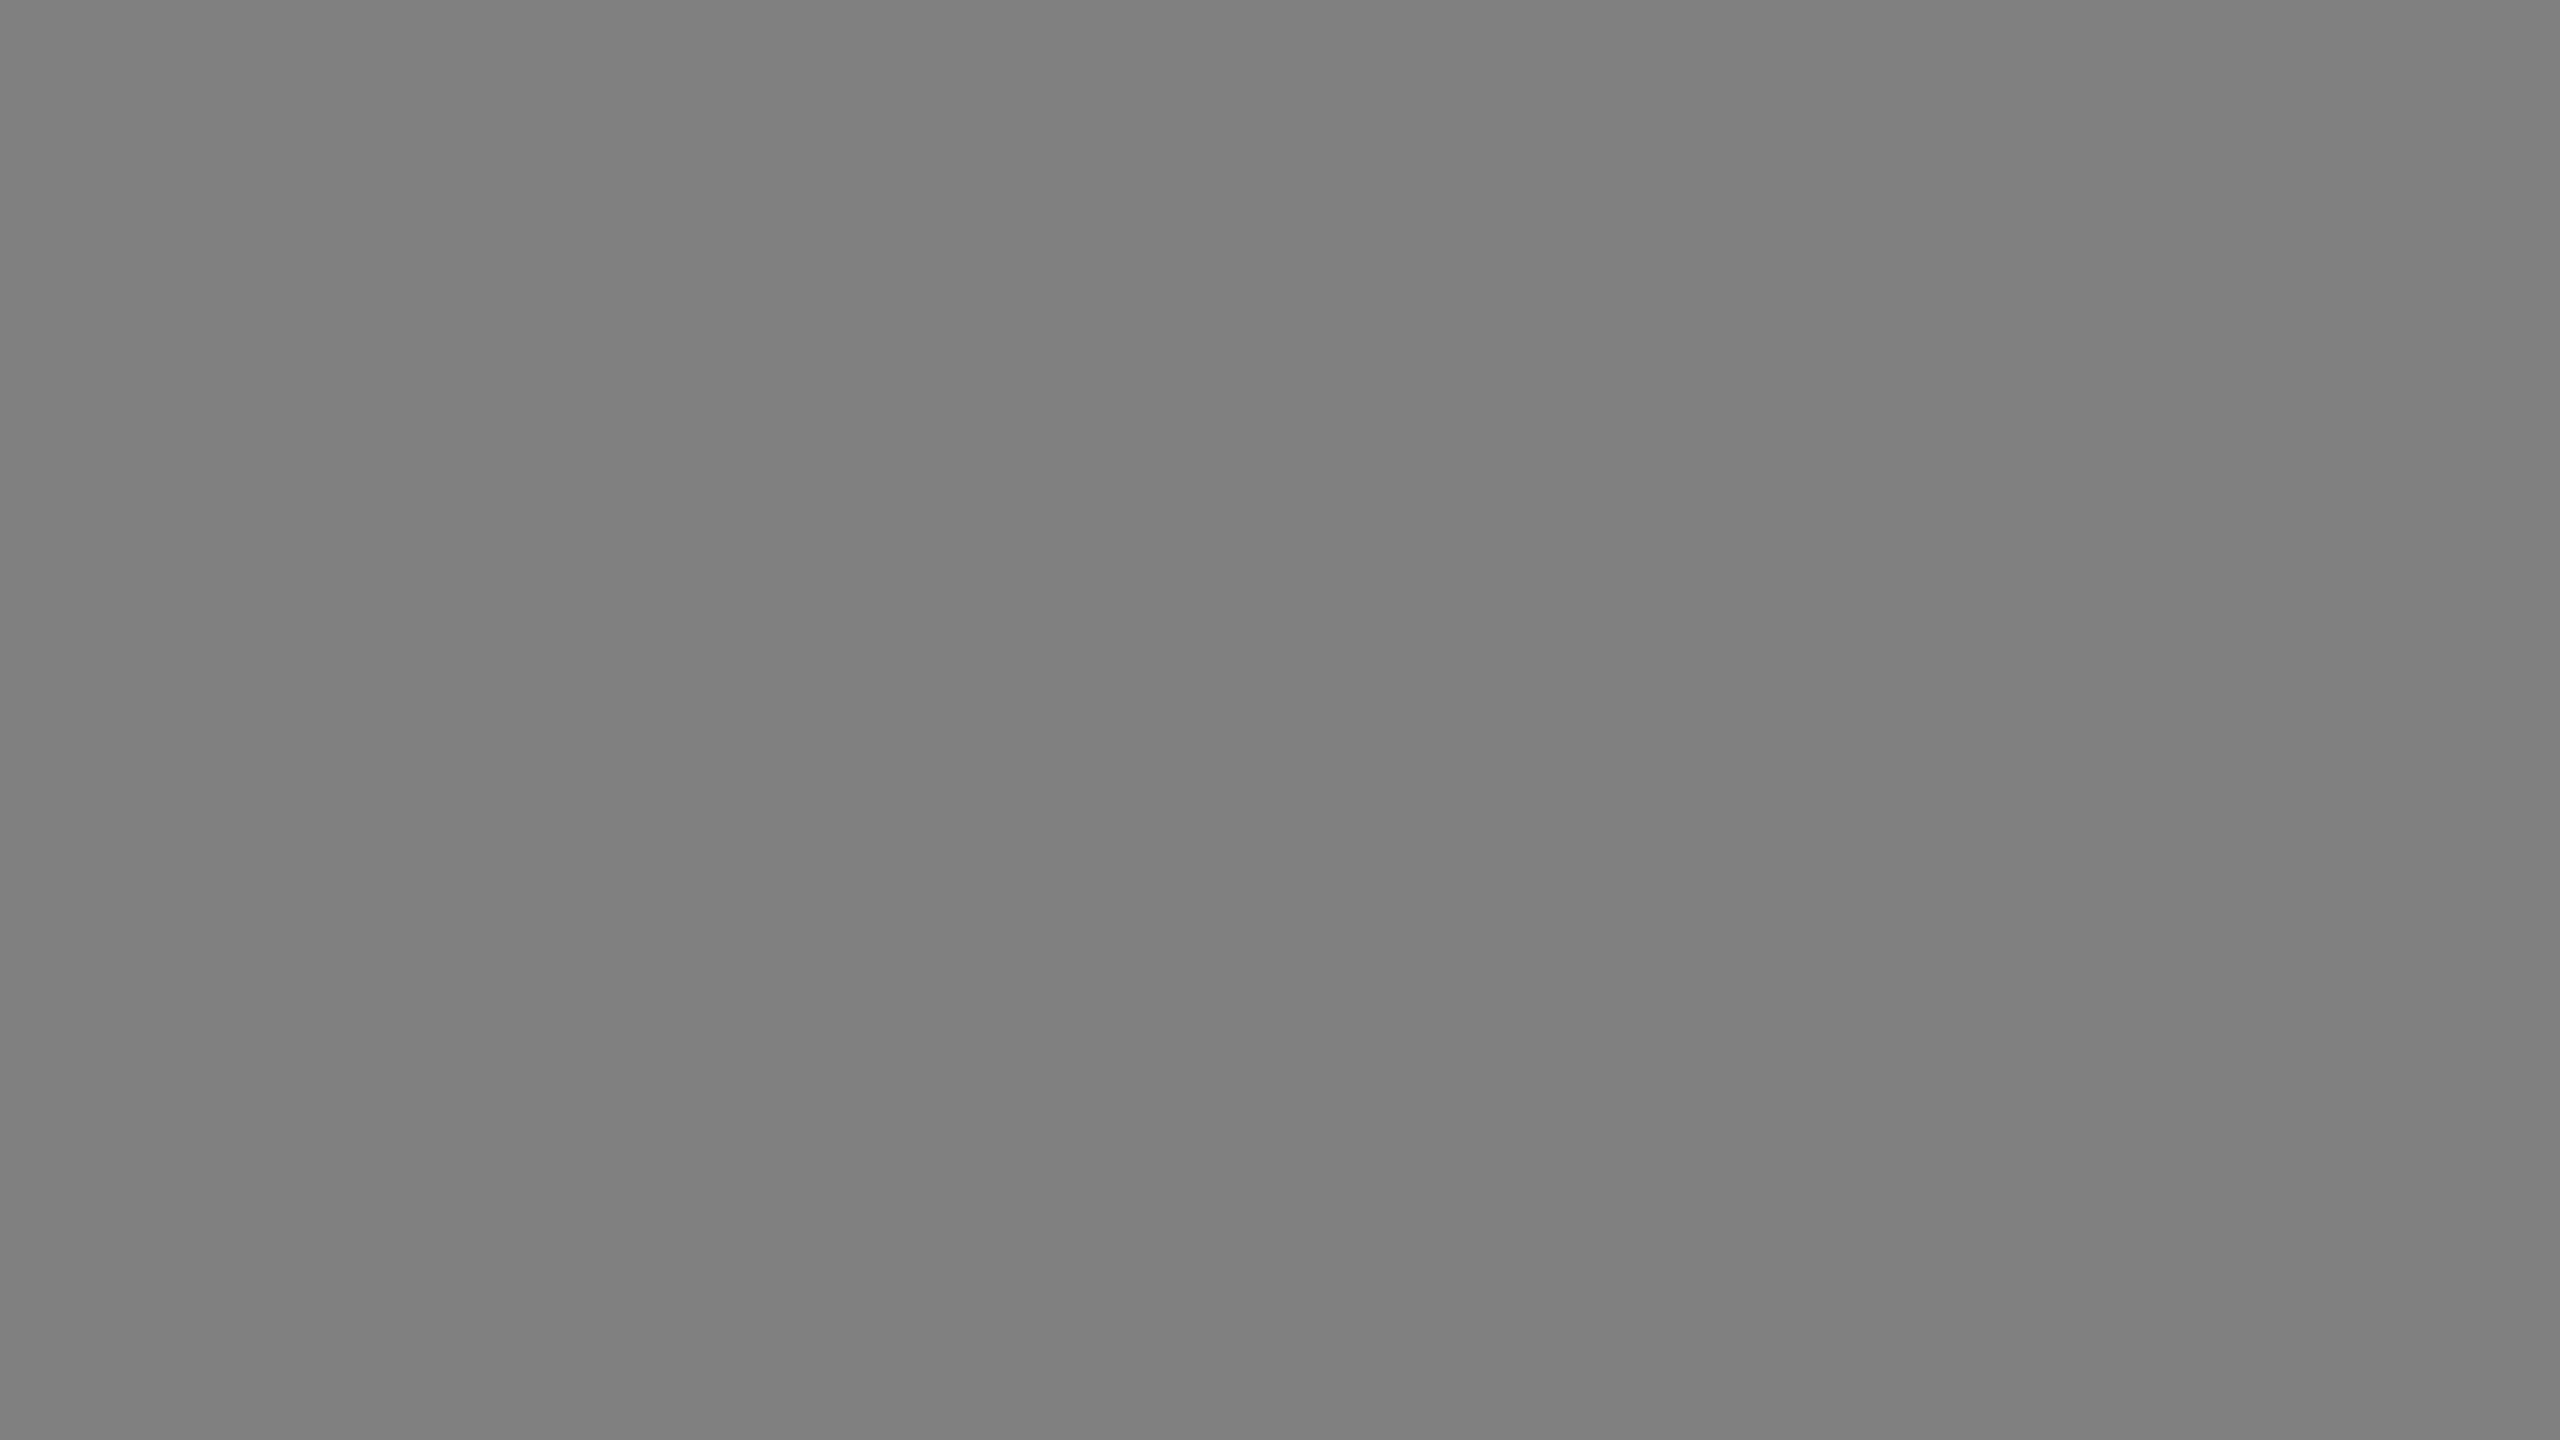 2560x1440 Gray Web Gray Solid Color Background